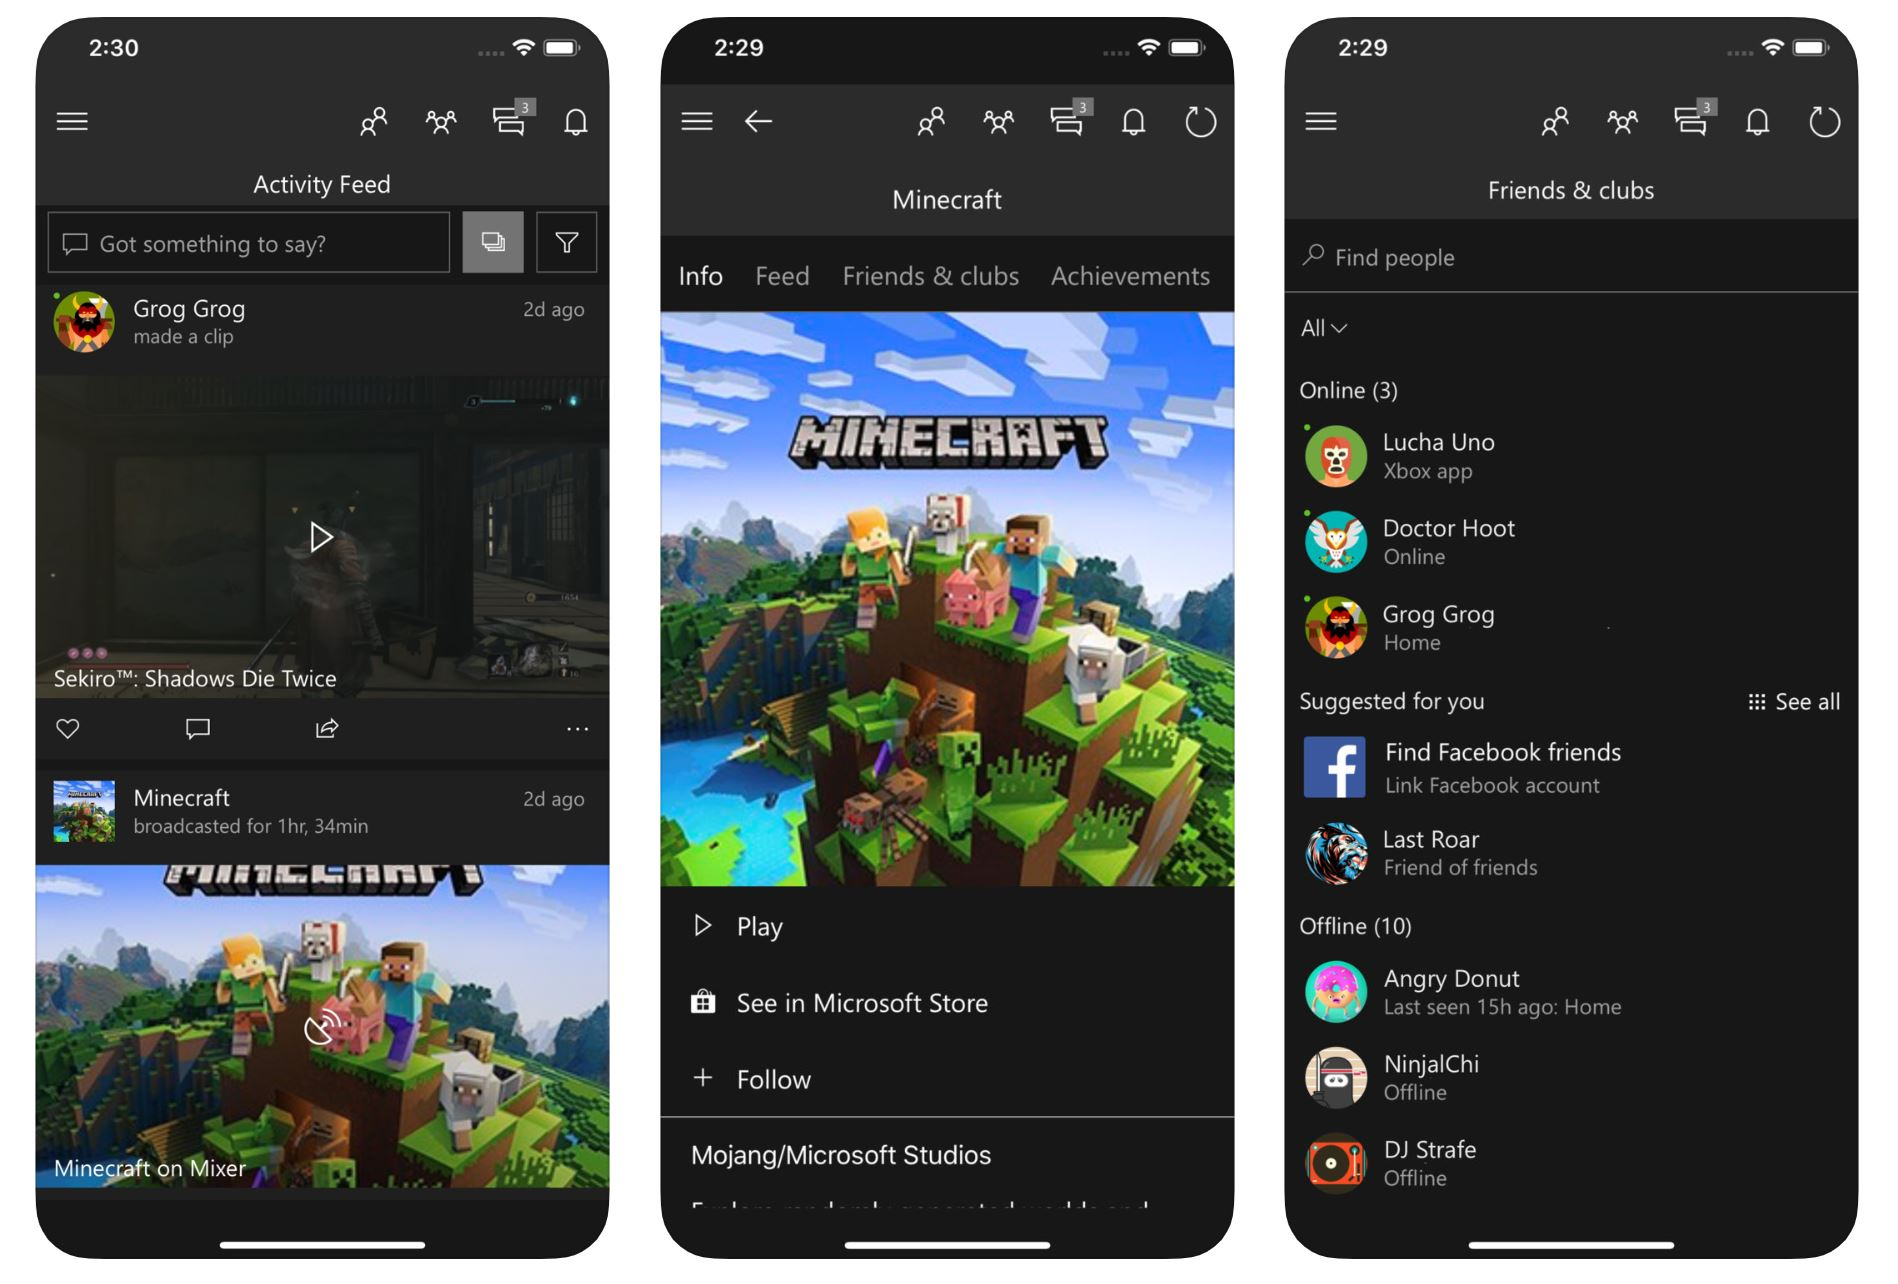 Xbox app for Android and iOS updated with support for images